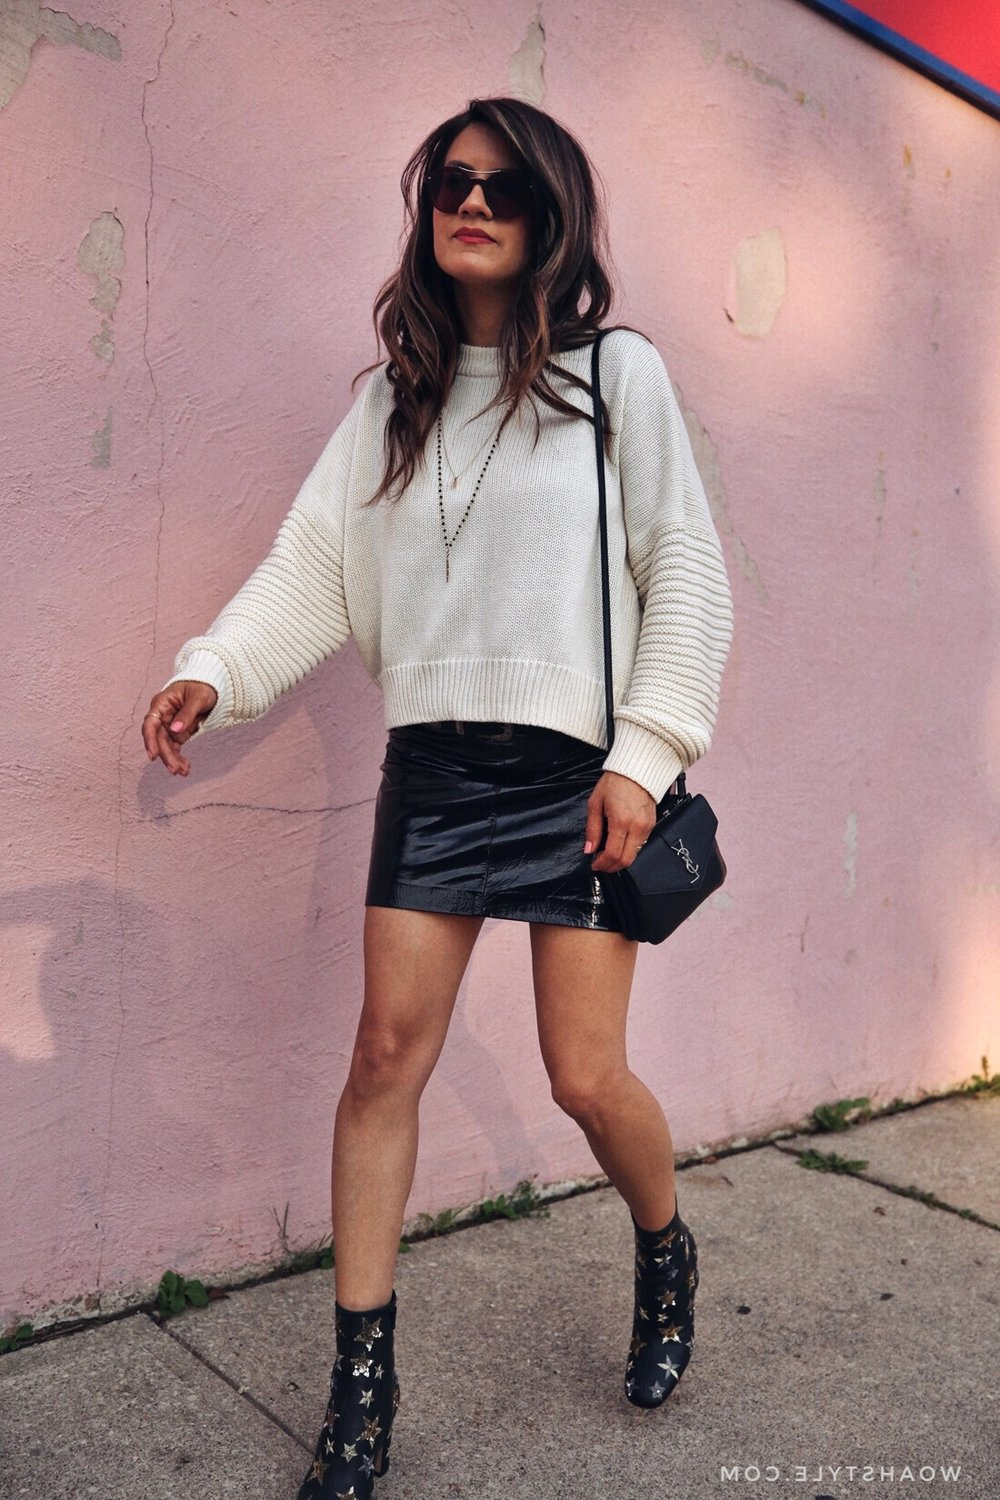 patent leather vinyl skirt, white knitted sweater, saint laurent wallet on a string cross body bag, valentino star studded ankle boots, street style, woahstyle.com, nathalie martin 10.jpg